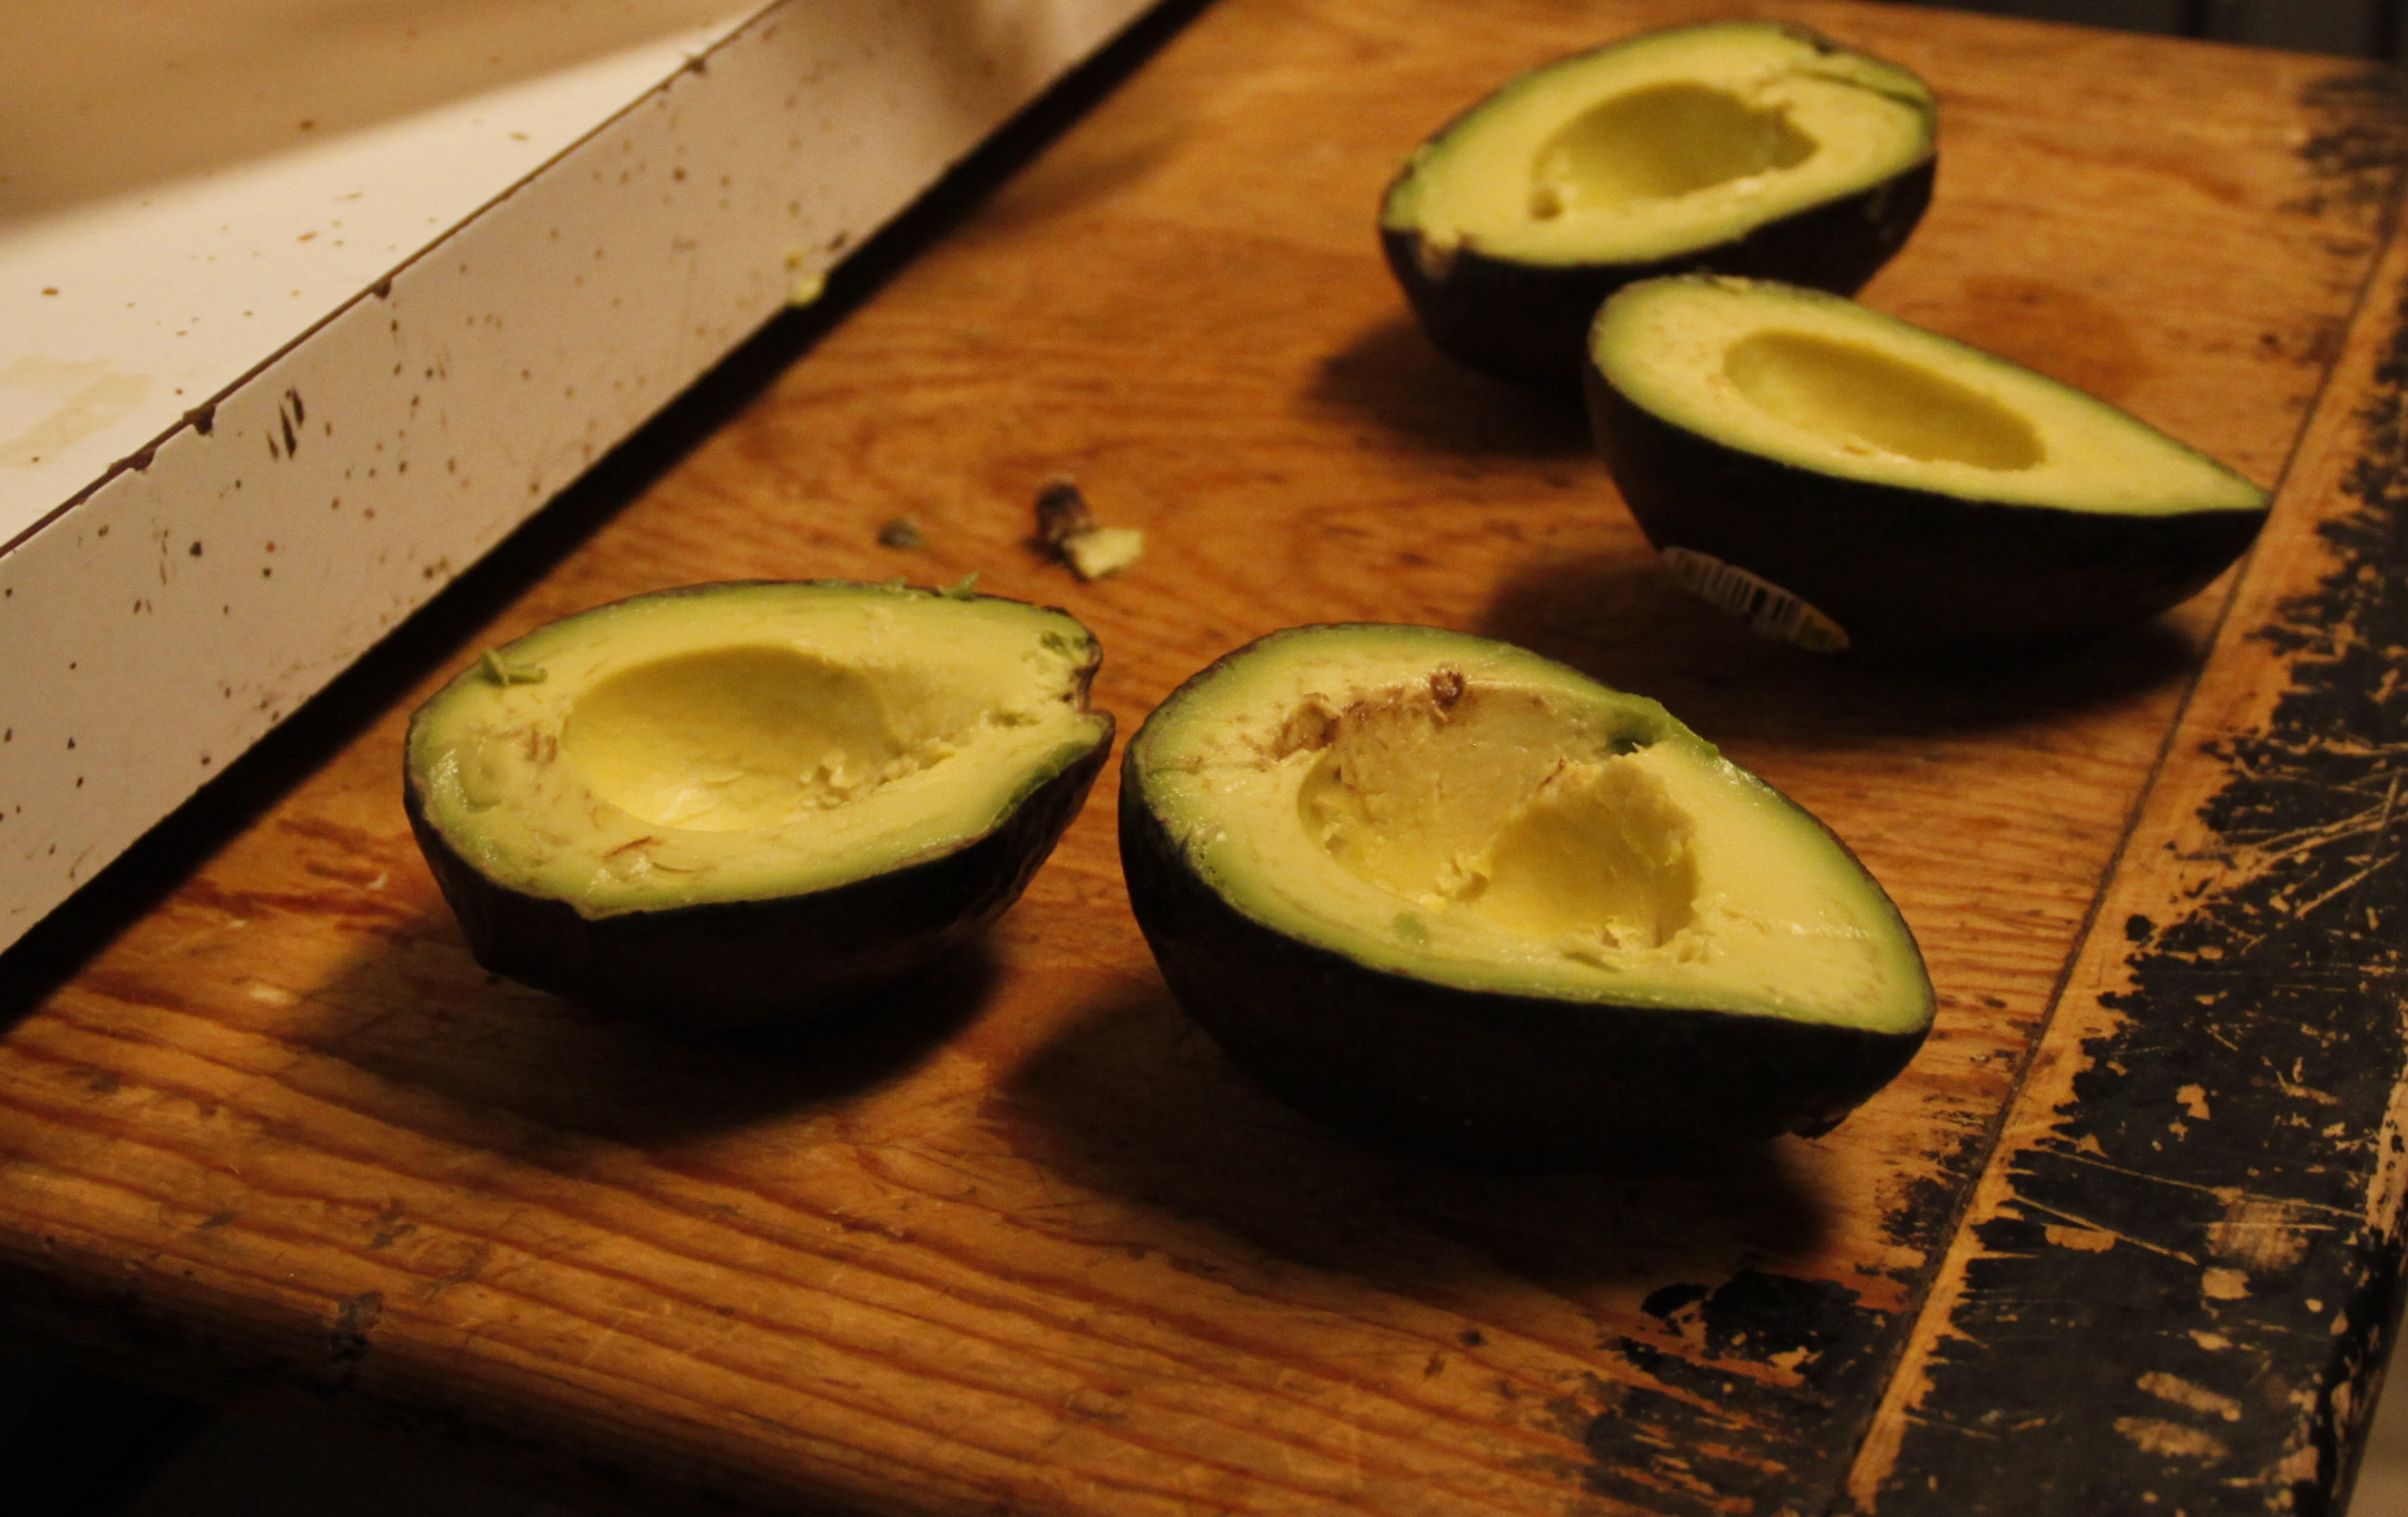 Avocado--The beginning of a very chocolaty relationship.